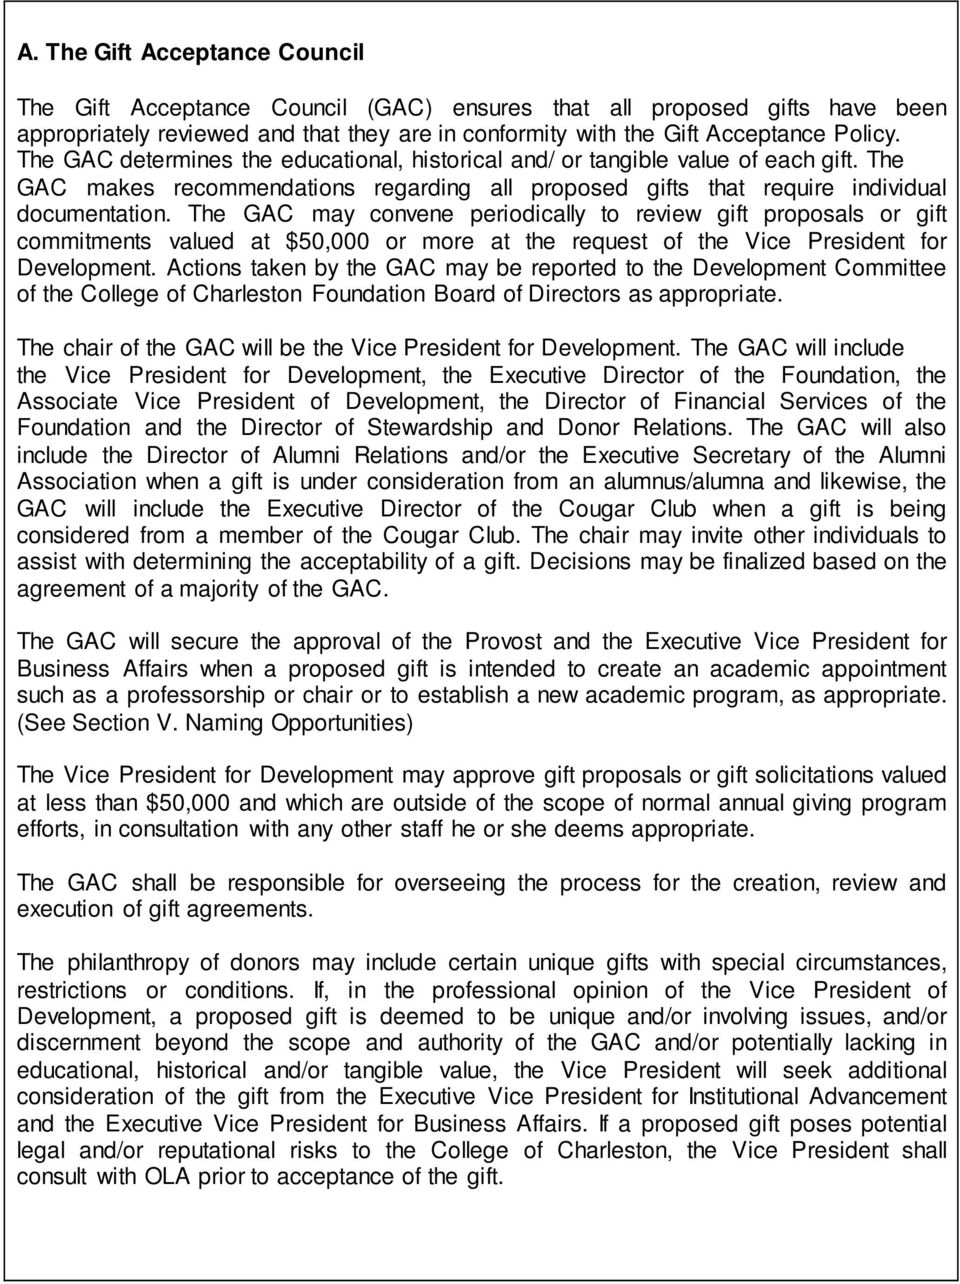 The GAC may convene periodically to review gift proposals or gift commitments valued at $50,000 or more at the request of the Vice President for Development.